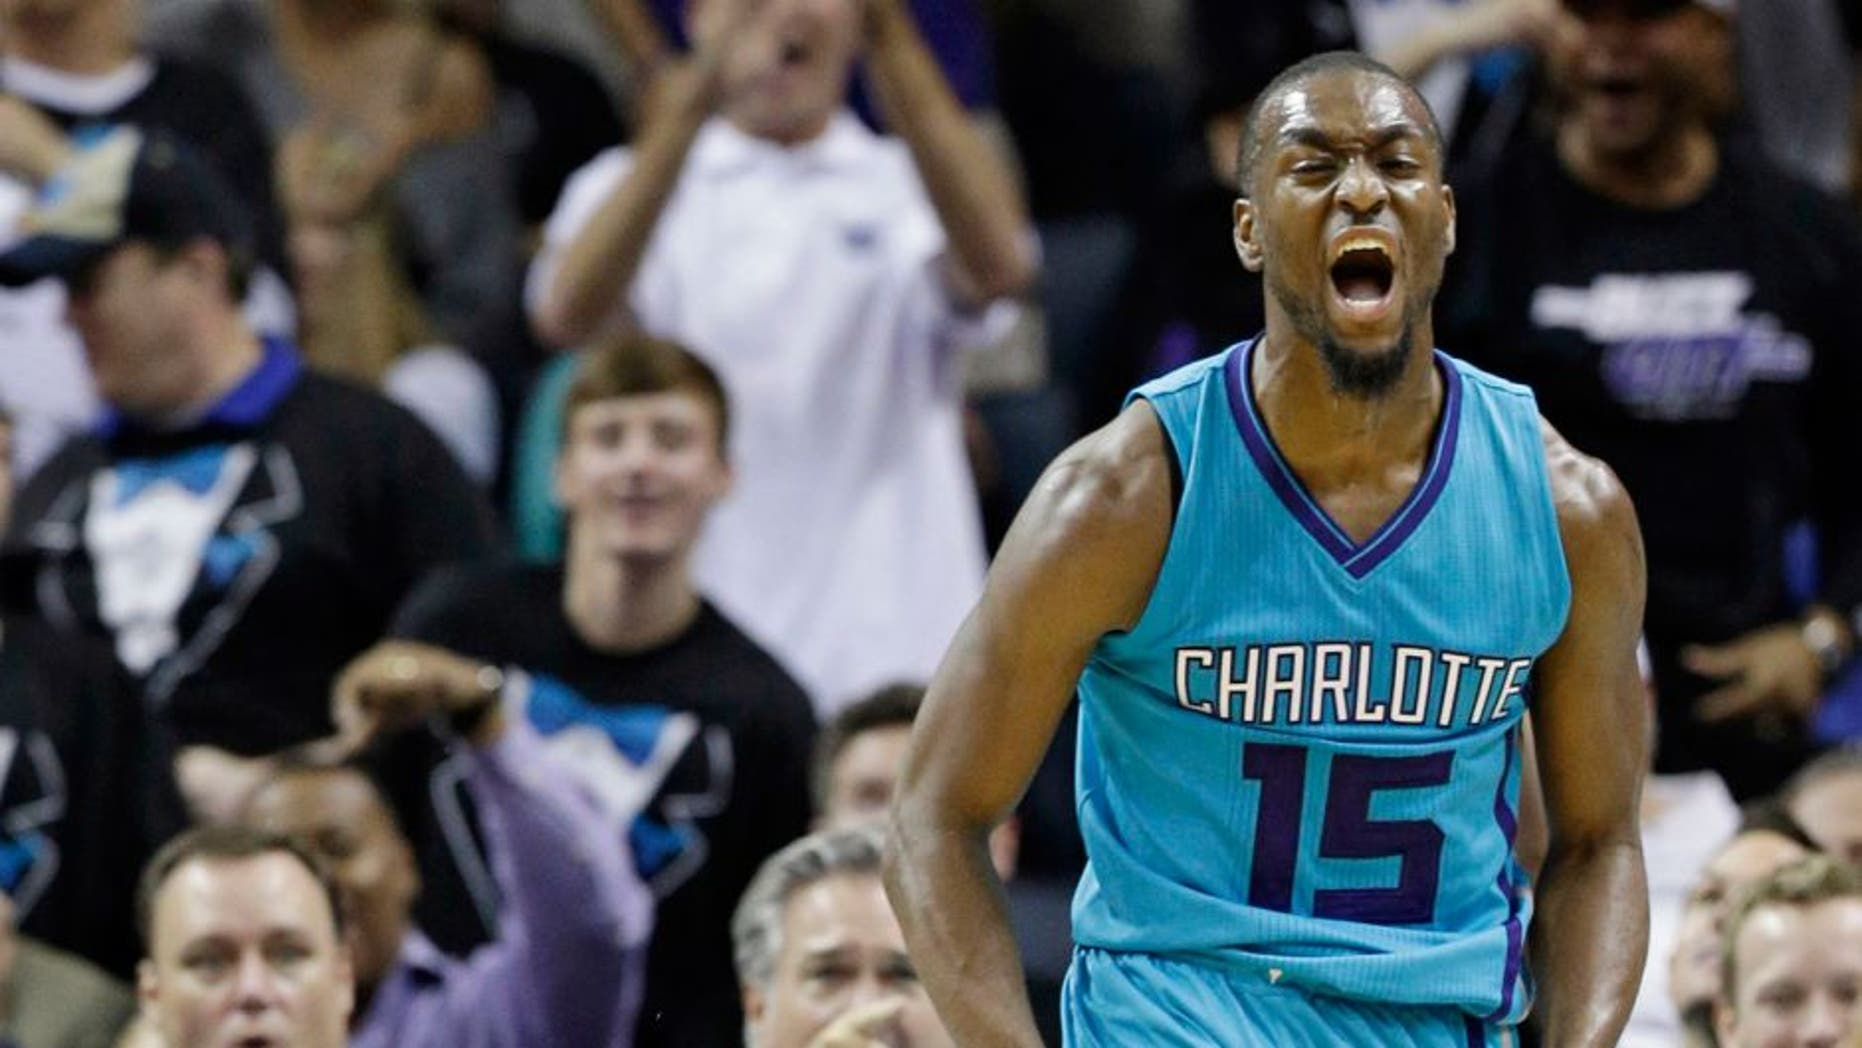 Charlotte Hornets' Kemba Walker (15) reacts after making a basket against the Milwaukee Bucks during the second half of an NBA basketball game in Charlotte, N.C., Wednesday, Oct. 29, 2014. The Hornets won 108-106 in overtime. (AP Photo/Chuck Burton)